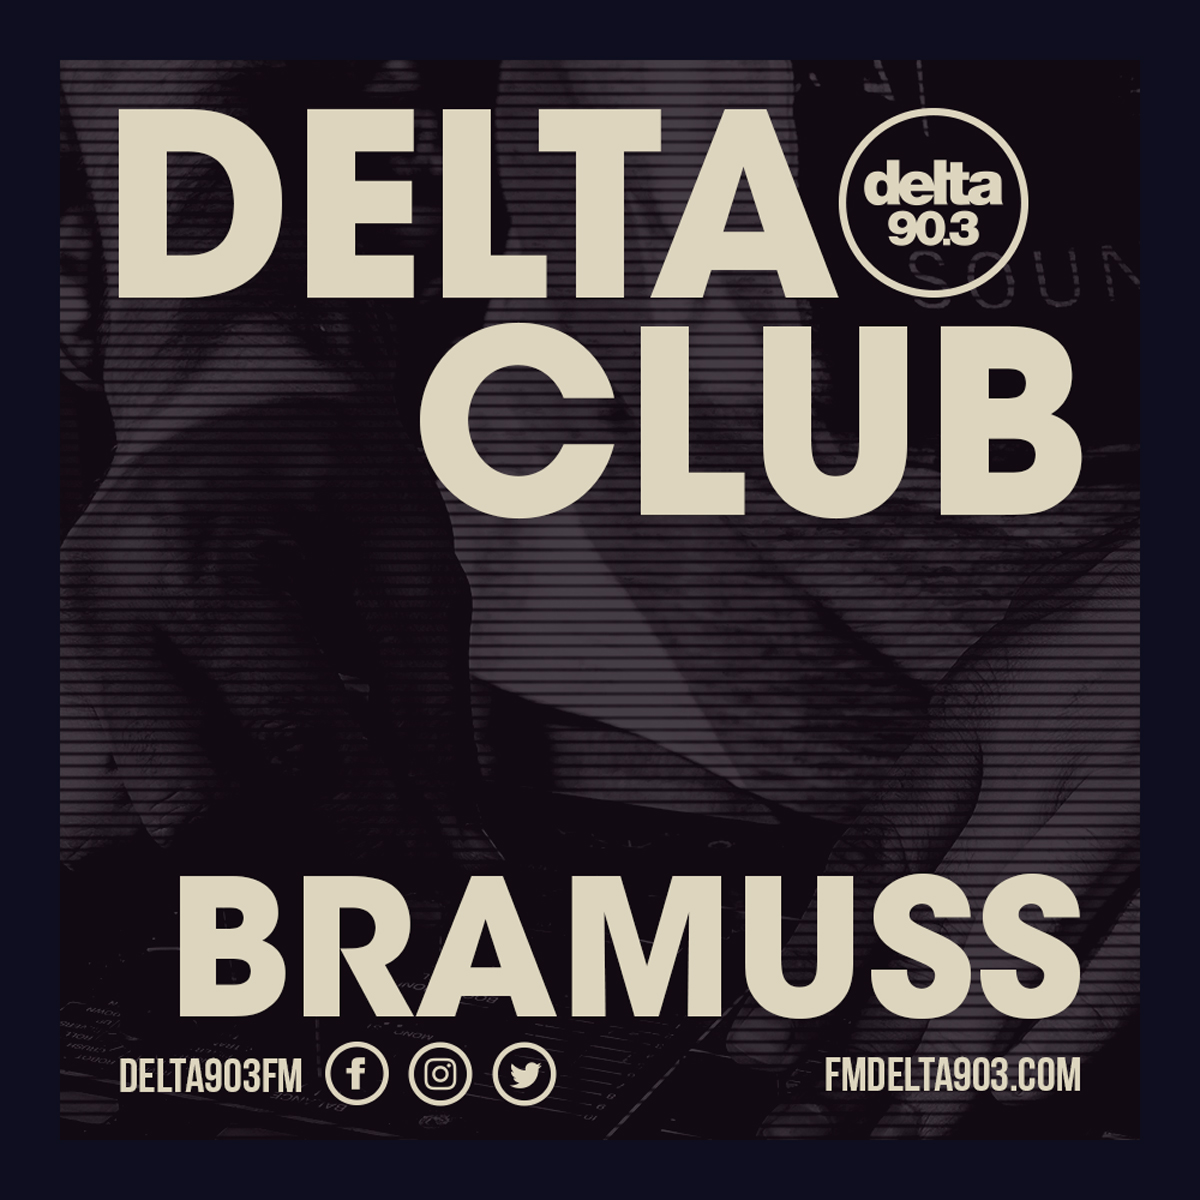 Delta Podcasts - Delta Club presents Bramuss (25.06.2018)